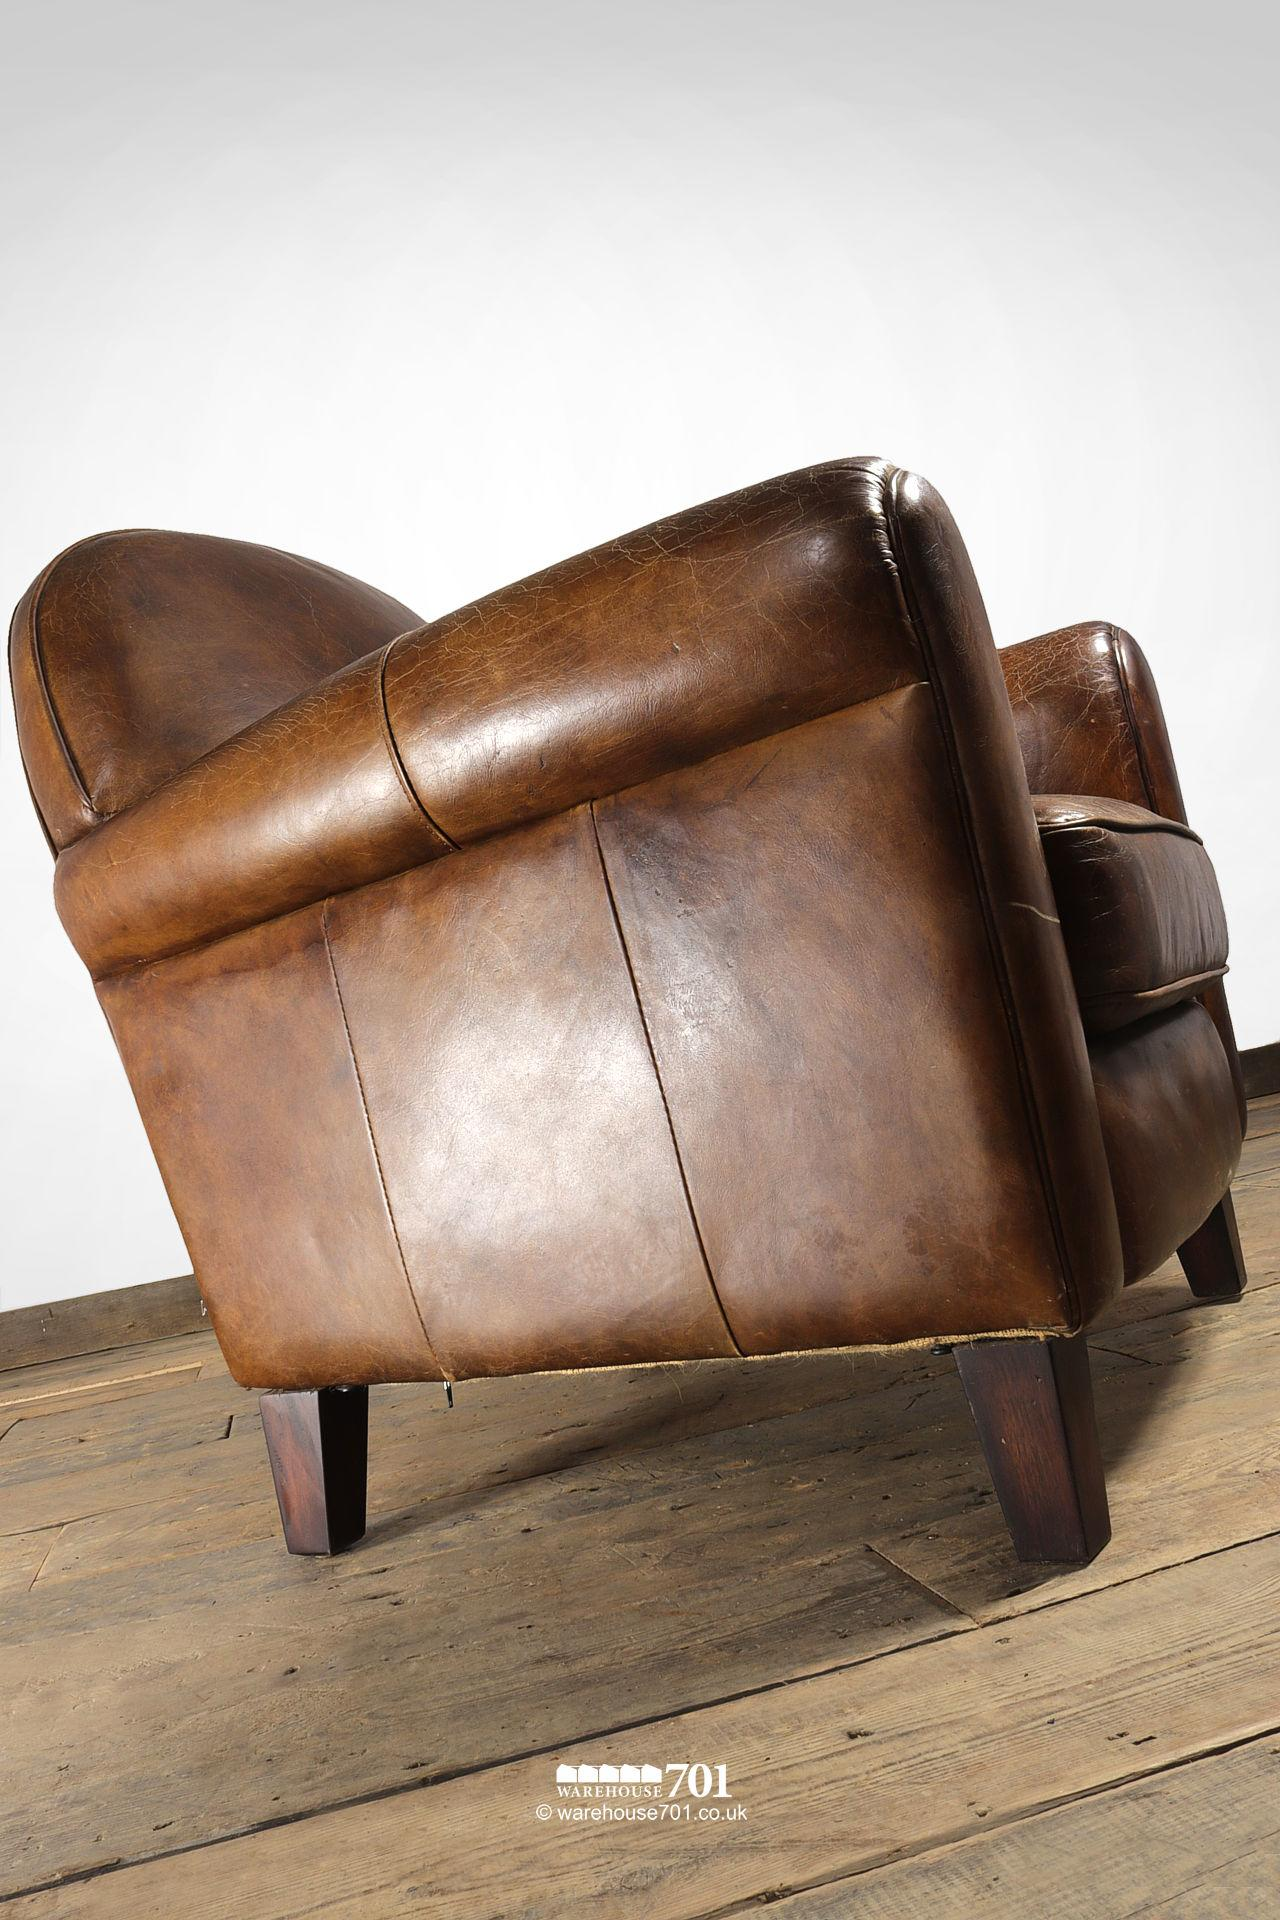 Beautifully Pre-Aged Tan Leather Armchair with Rounded Arms and Back #4